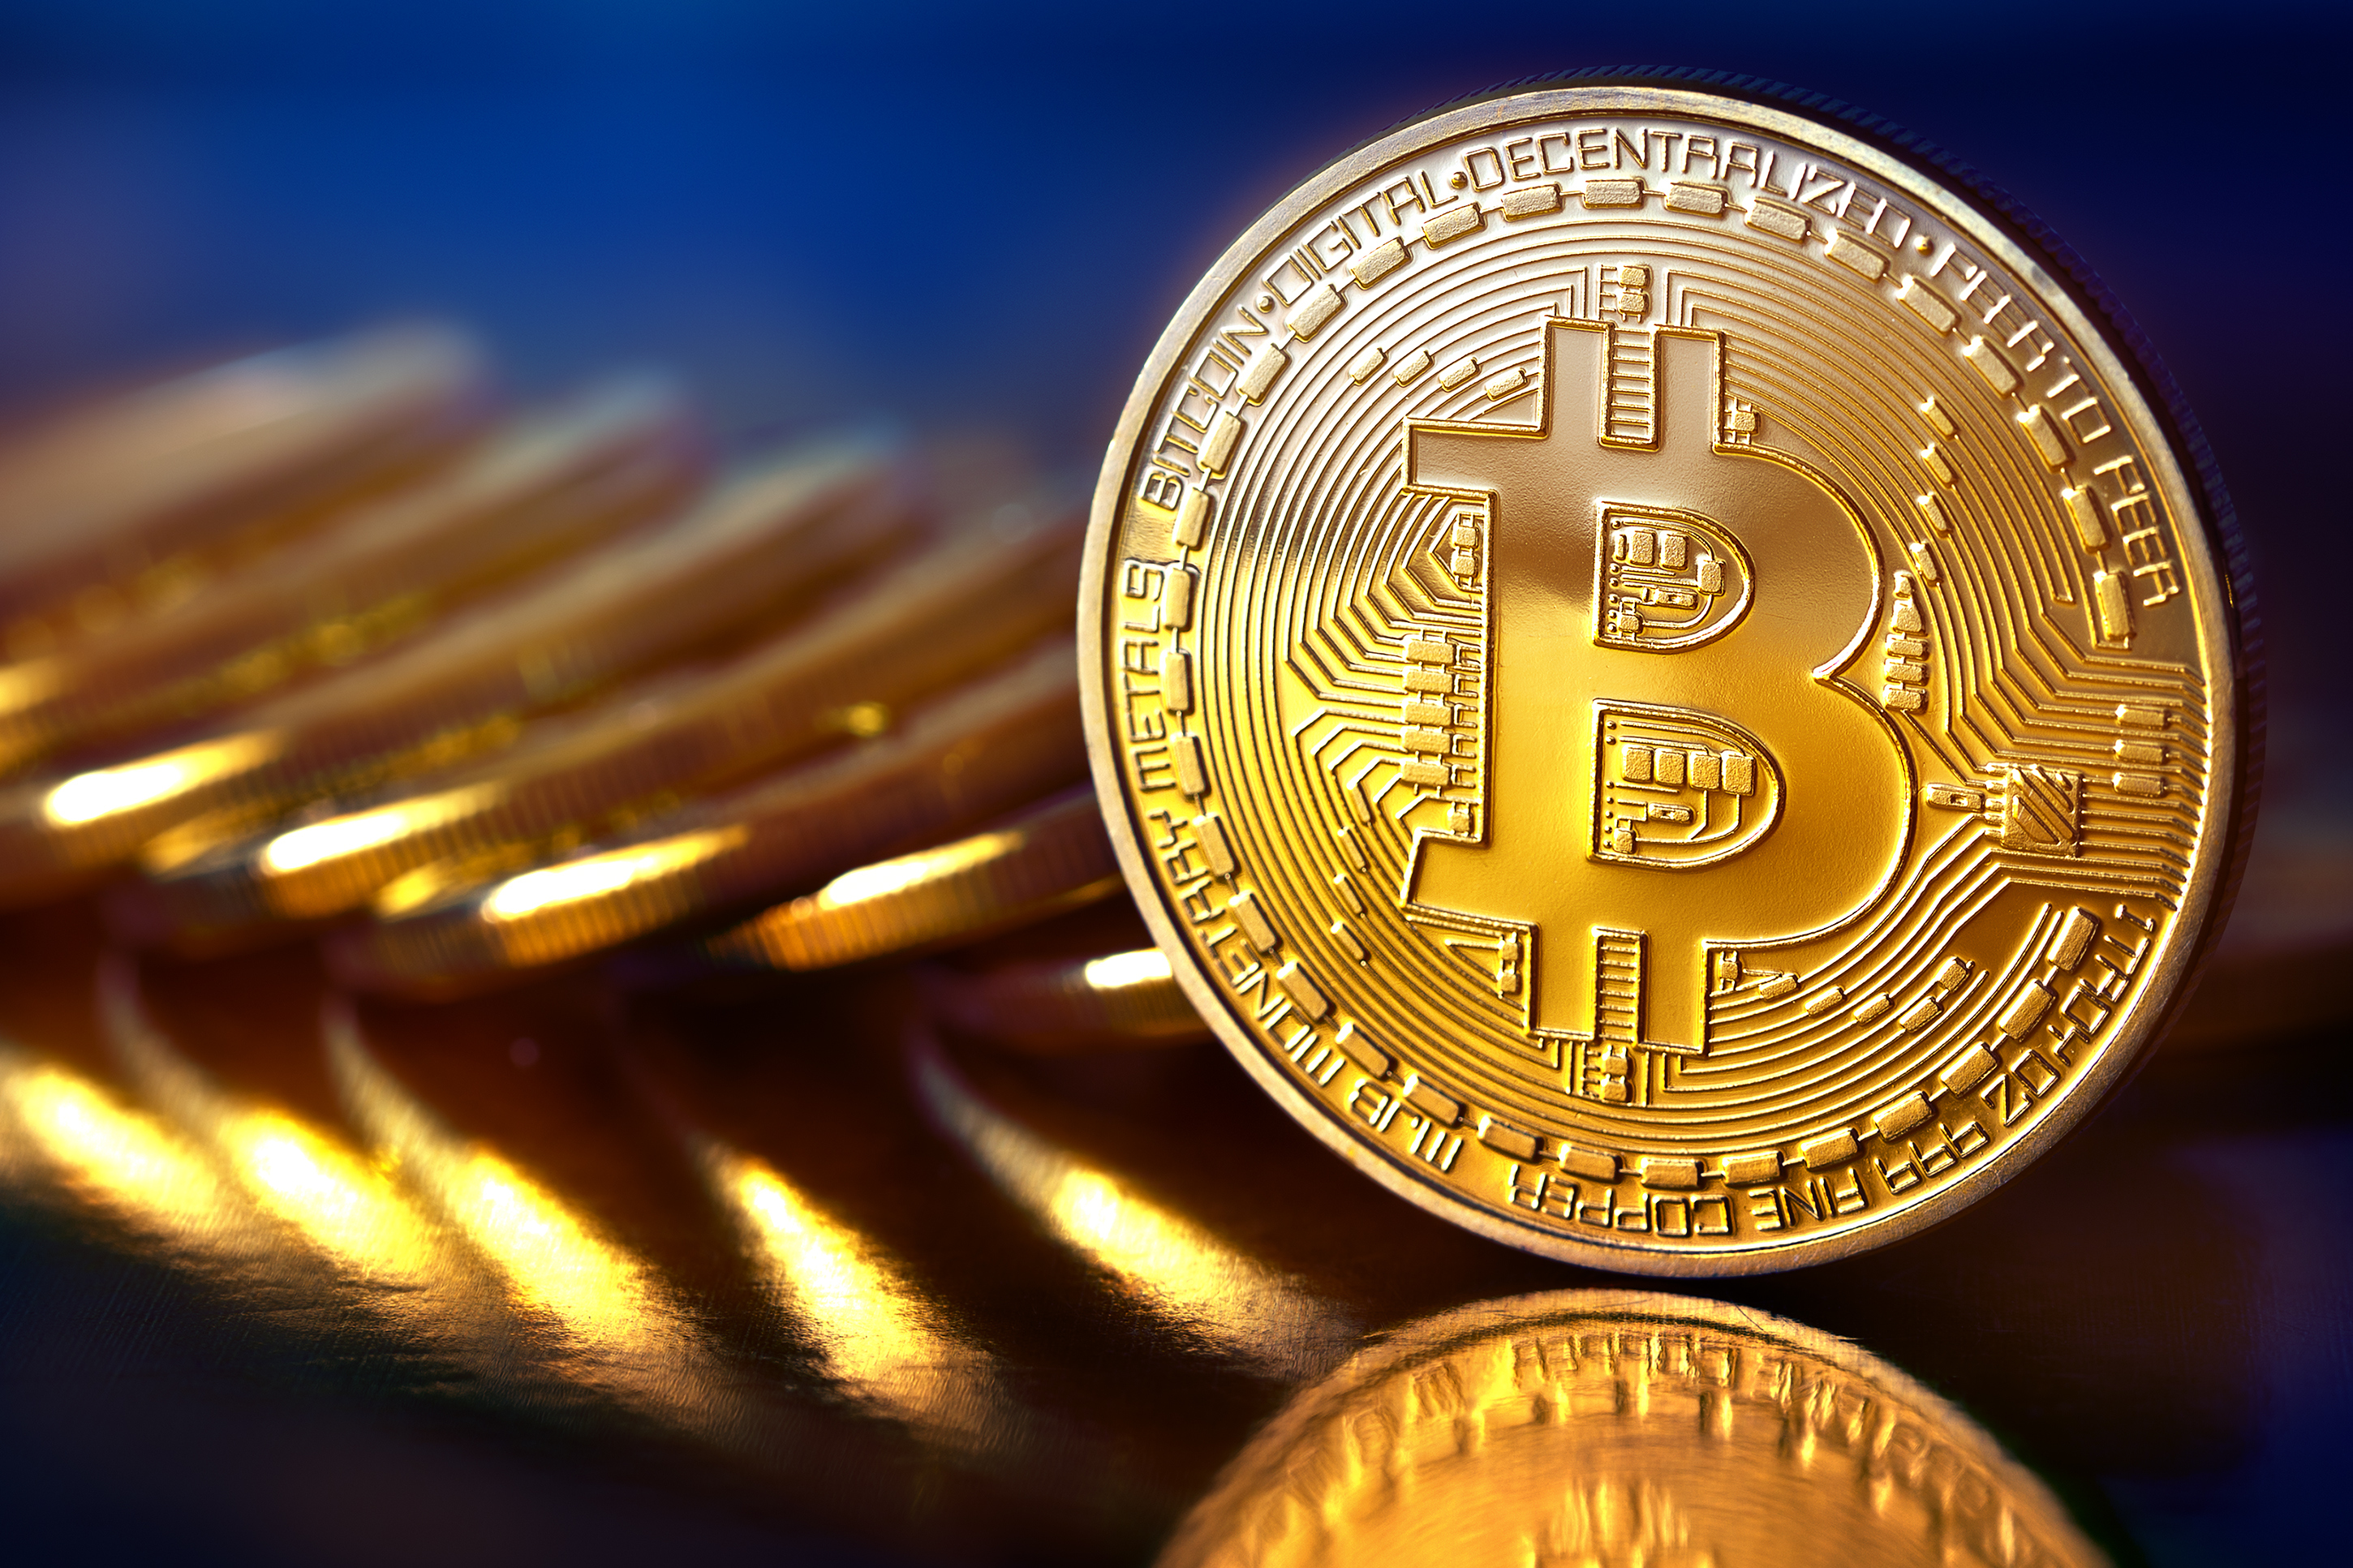 News bitcoin what do i do if mine is stolen resolver 7122017 big news for bitcoin again as the cryptocurrencys value pushed through 16000 and 64 million was stolen from a major bitcoin marketplace by ccuart Choice Image